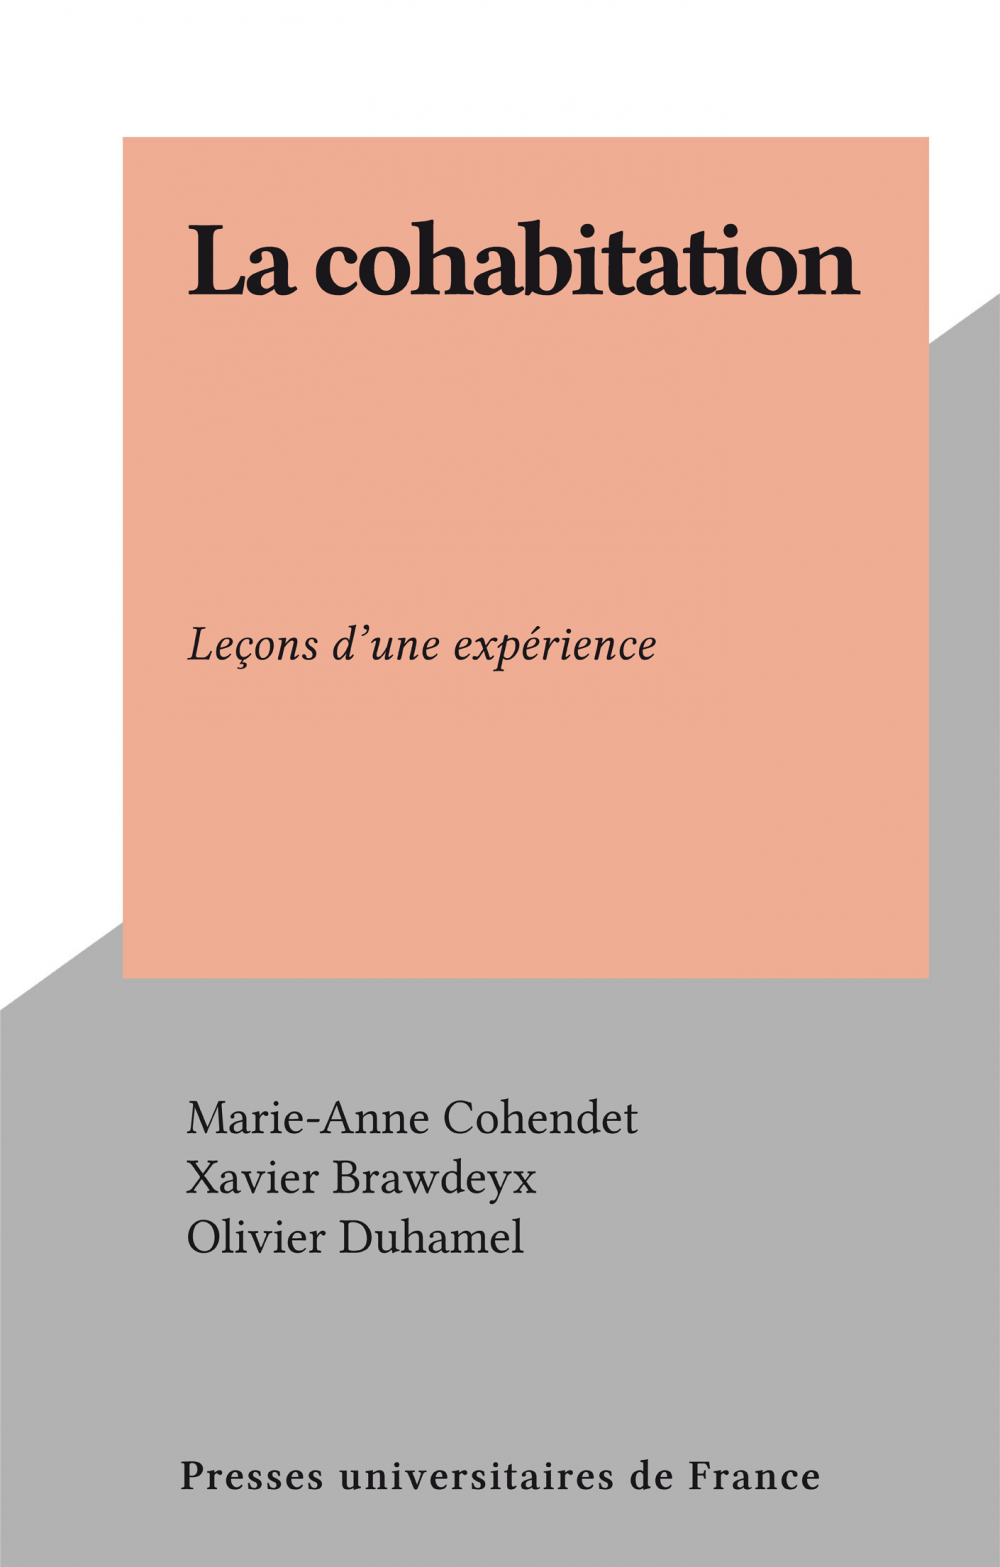 La cohabitation